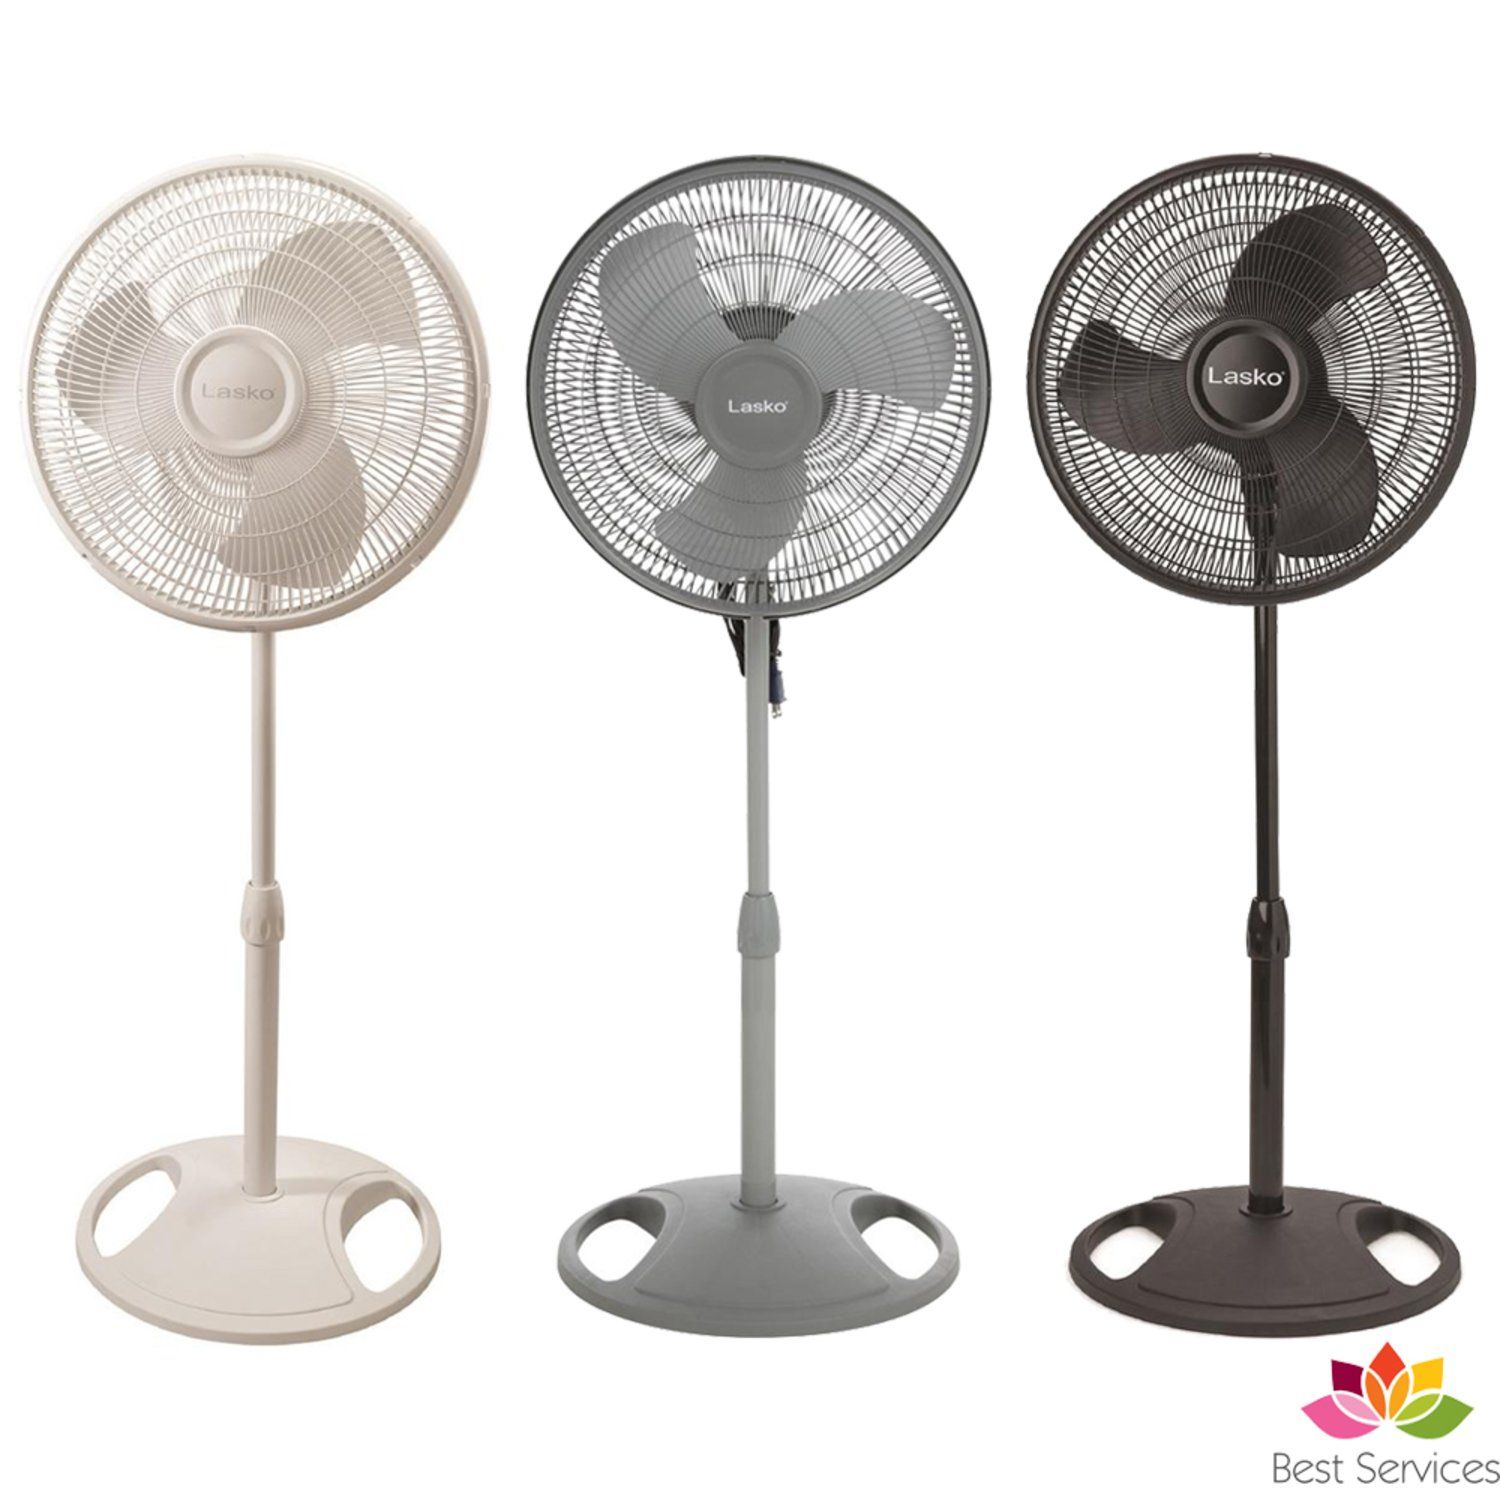 The Lasko16 In Stand Fan With 90 Degree Oscillation Sweep Produces High Air Output Which Is Perfect For Any Room Pedestal Fan Floor Standing Fan Standing Fans